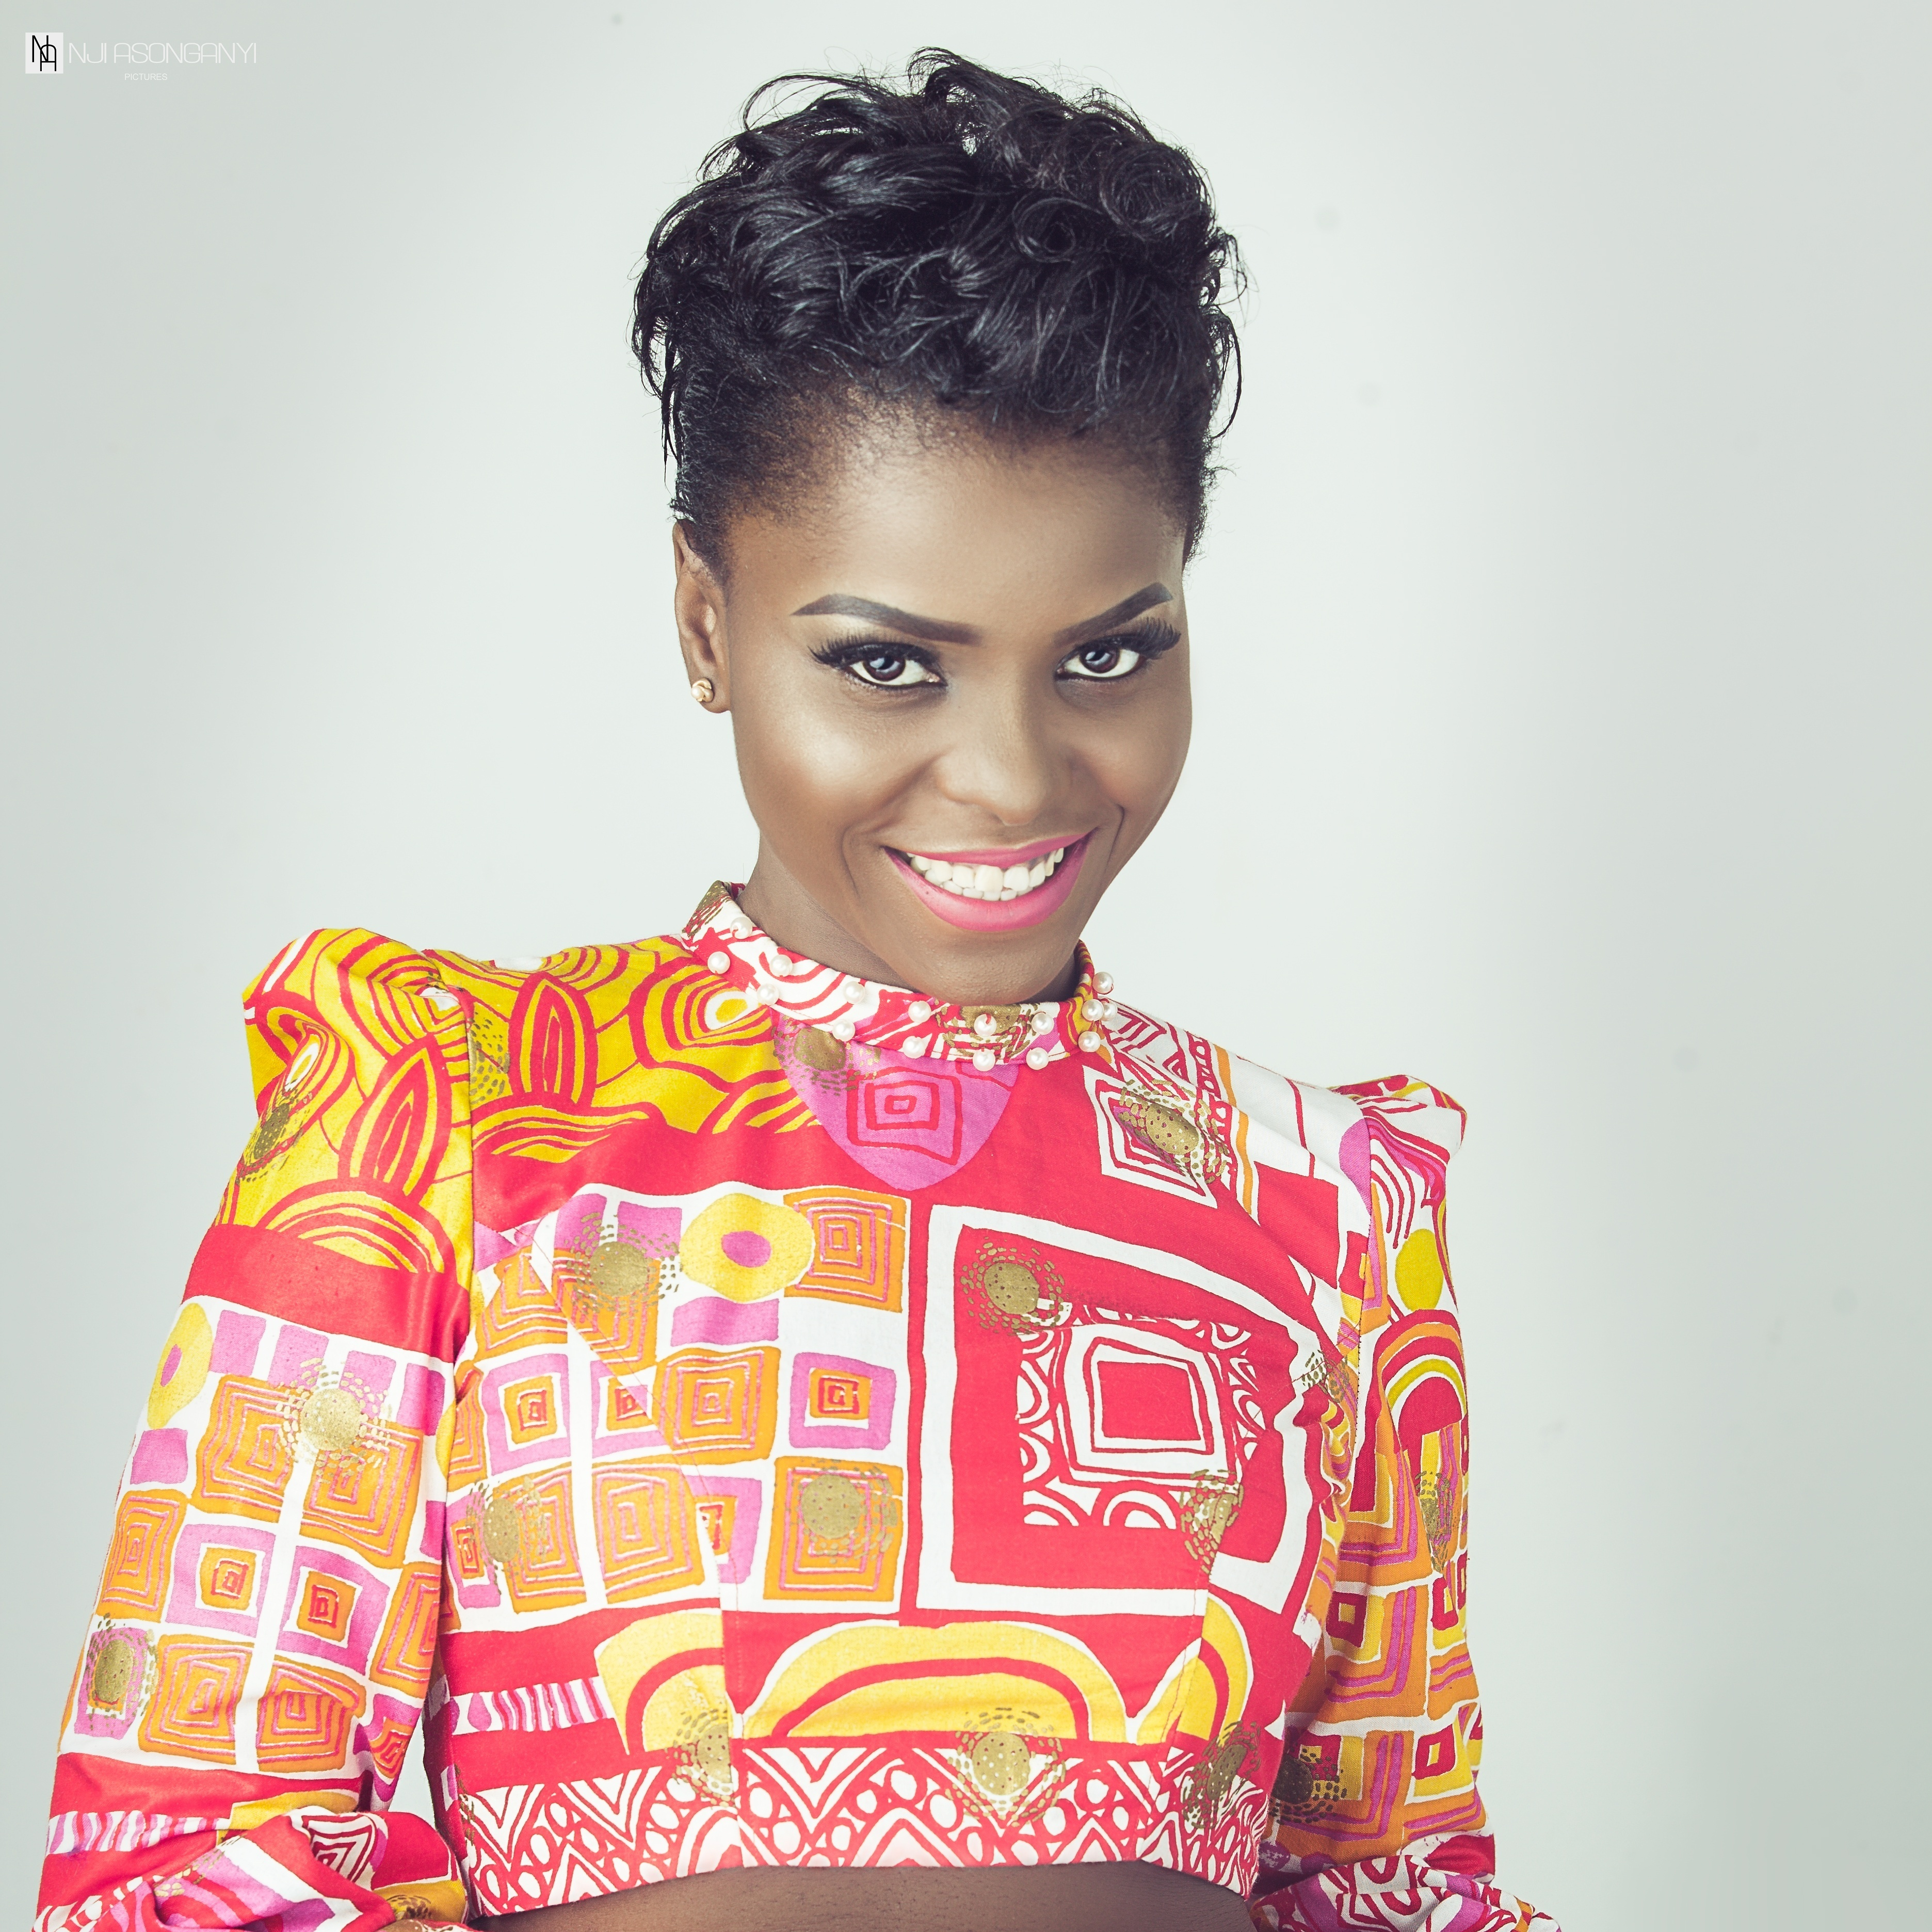 OF COURSE DAPHNE NJIE WORE A SPELL KOOTOR DRESS FOR HER BIRTHDAY